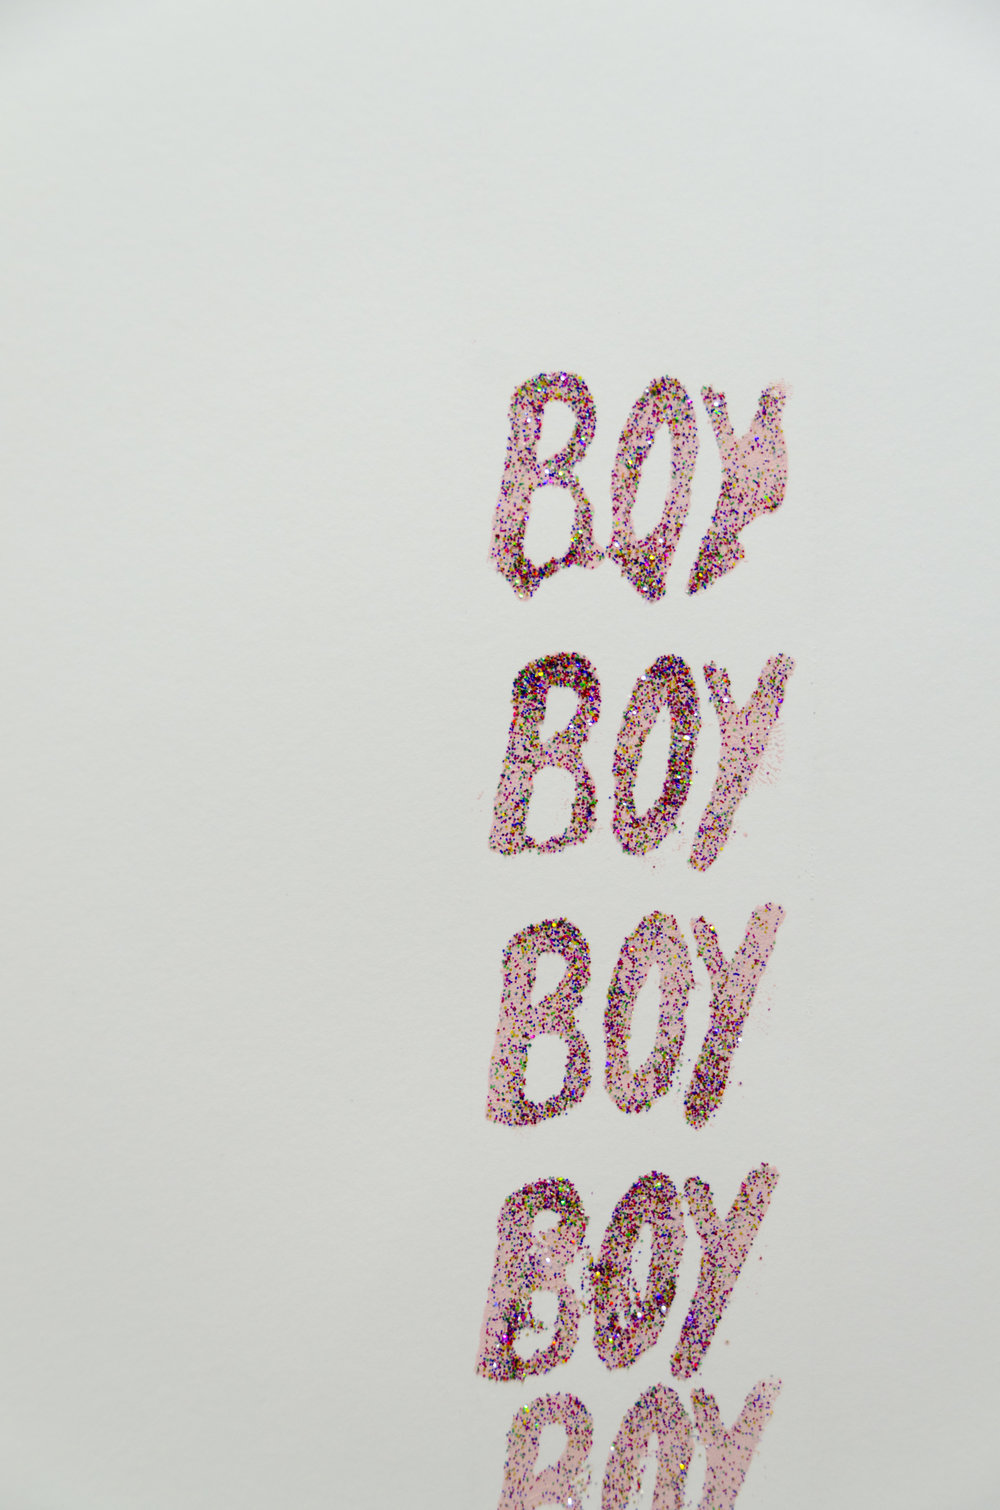 Boy  (Detail)  Pantyhose and embroidery hoop screen print on paper, gloss acrylic base, acrylic, nails, embroidery hoop, pantyhose, and glitter  2017